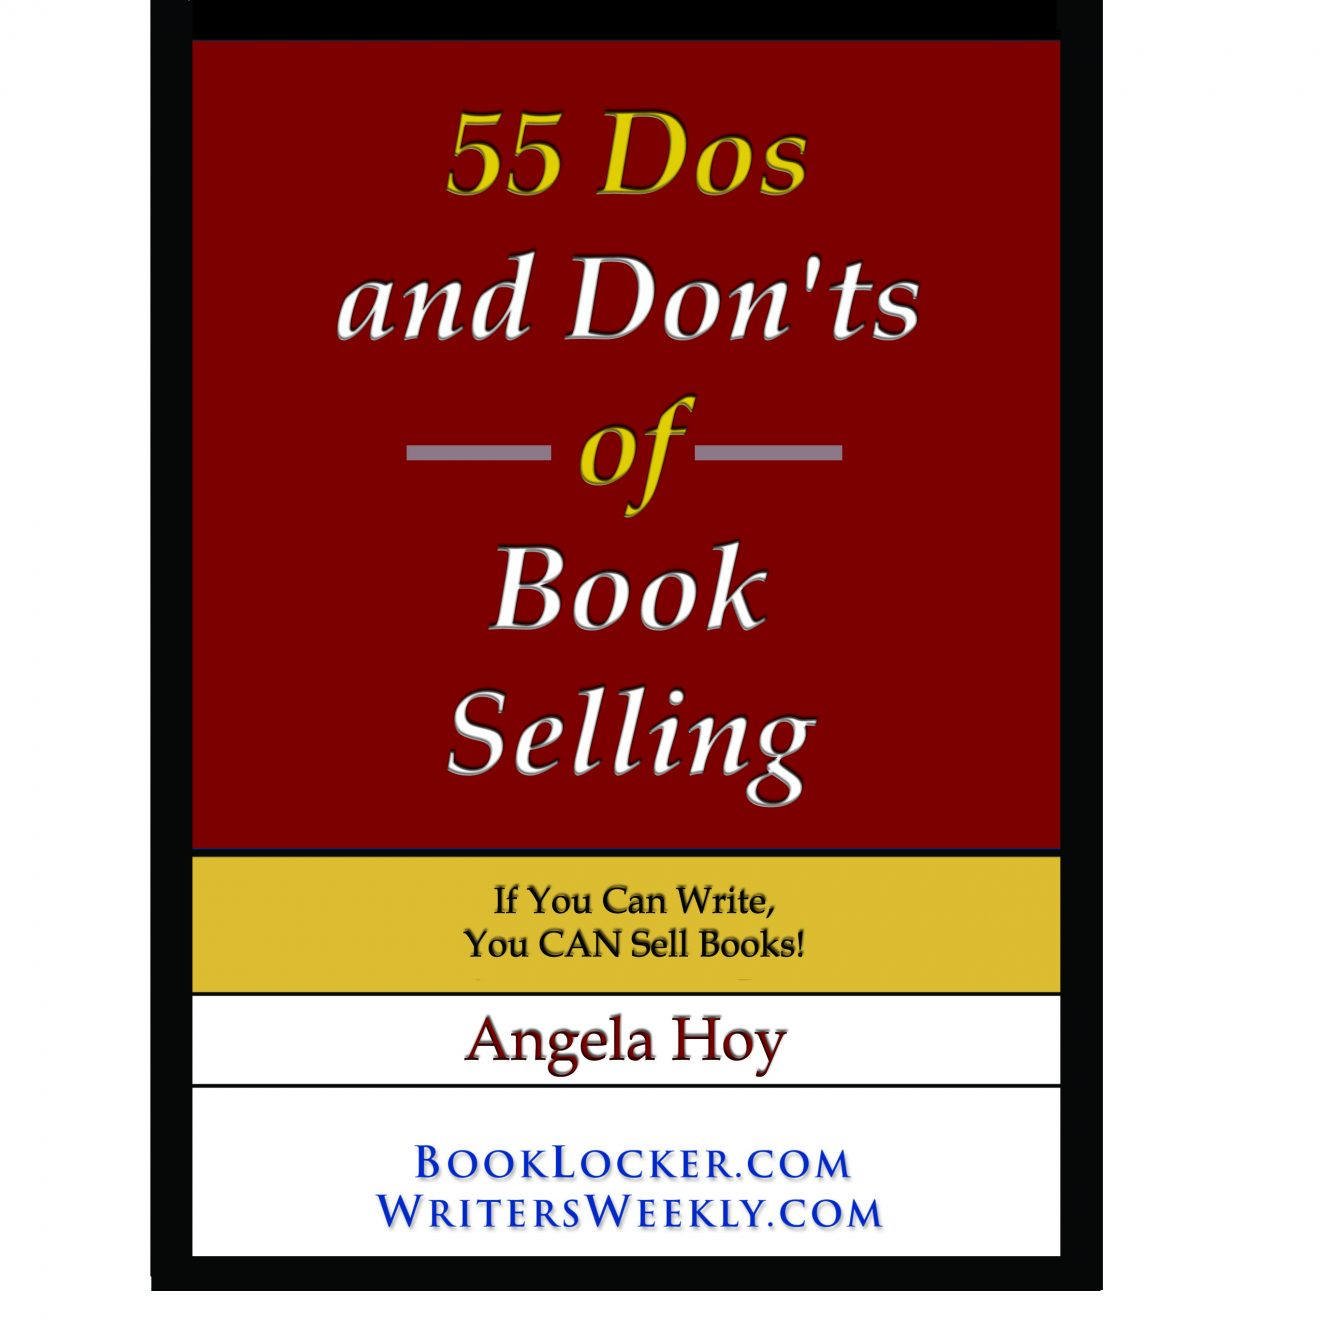 55 Dos and Don'ts of Book Selling Has Been Published! - Get Your FREE Copy TODAY!!